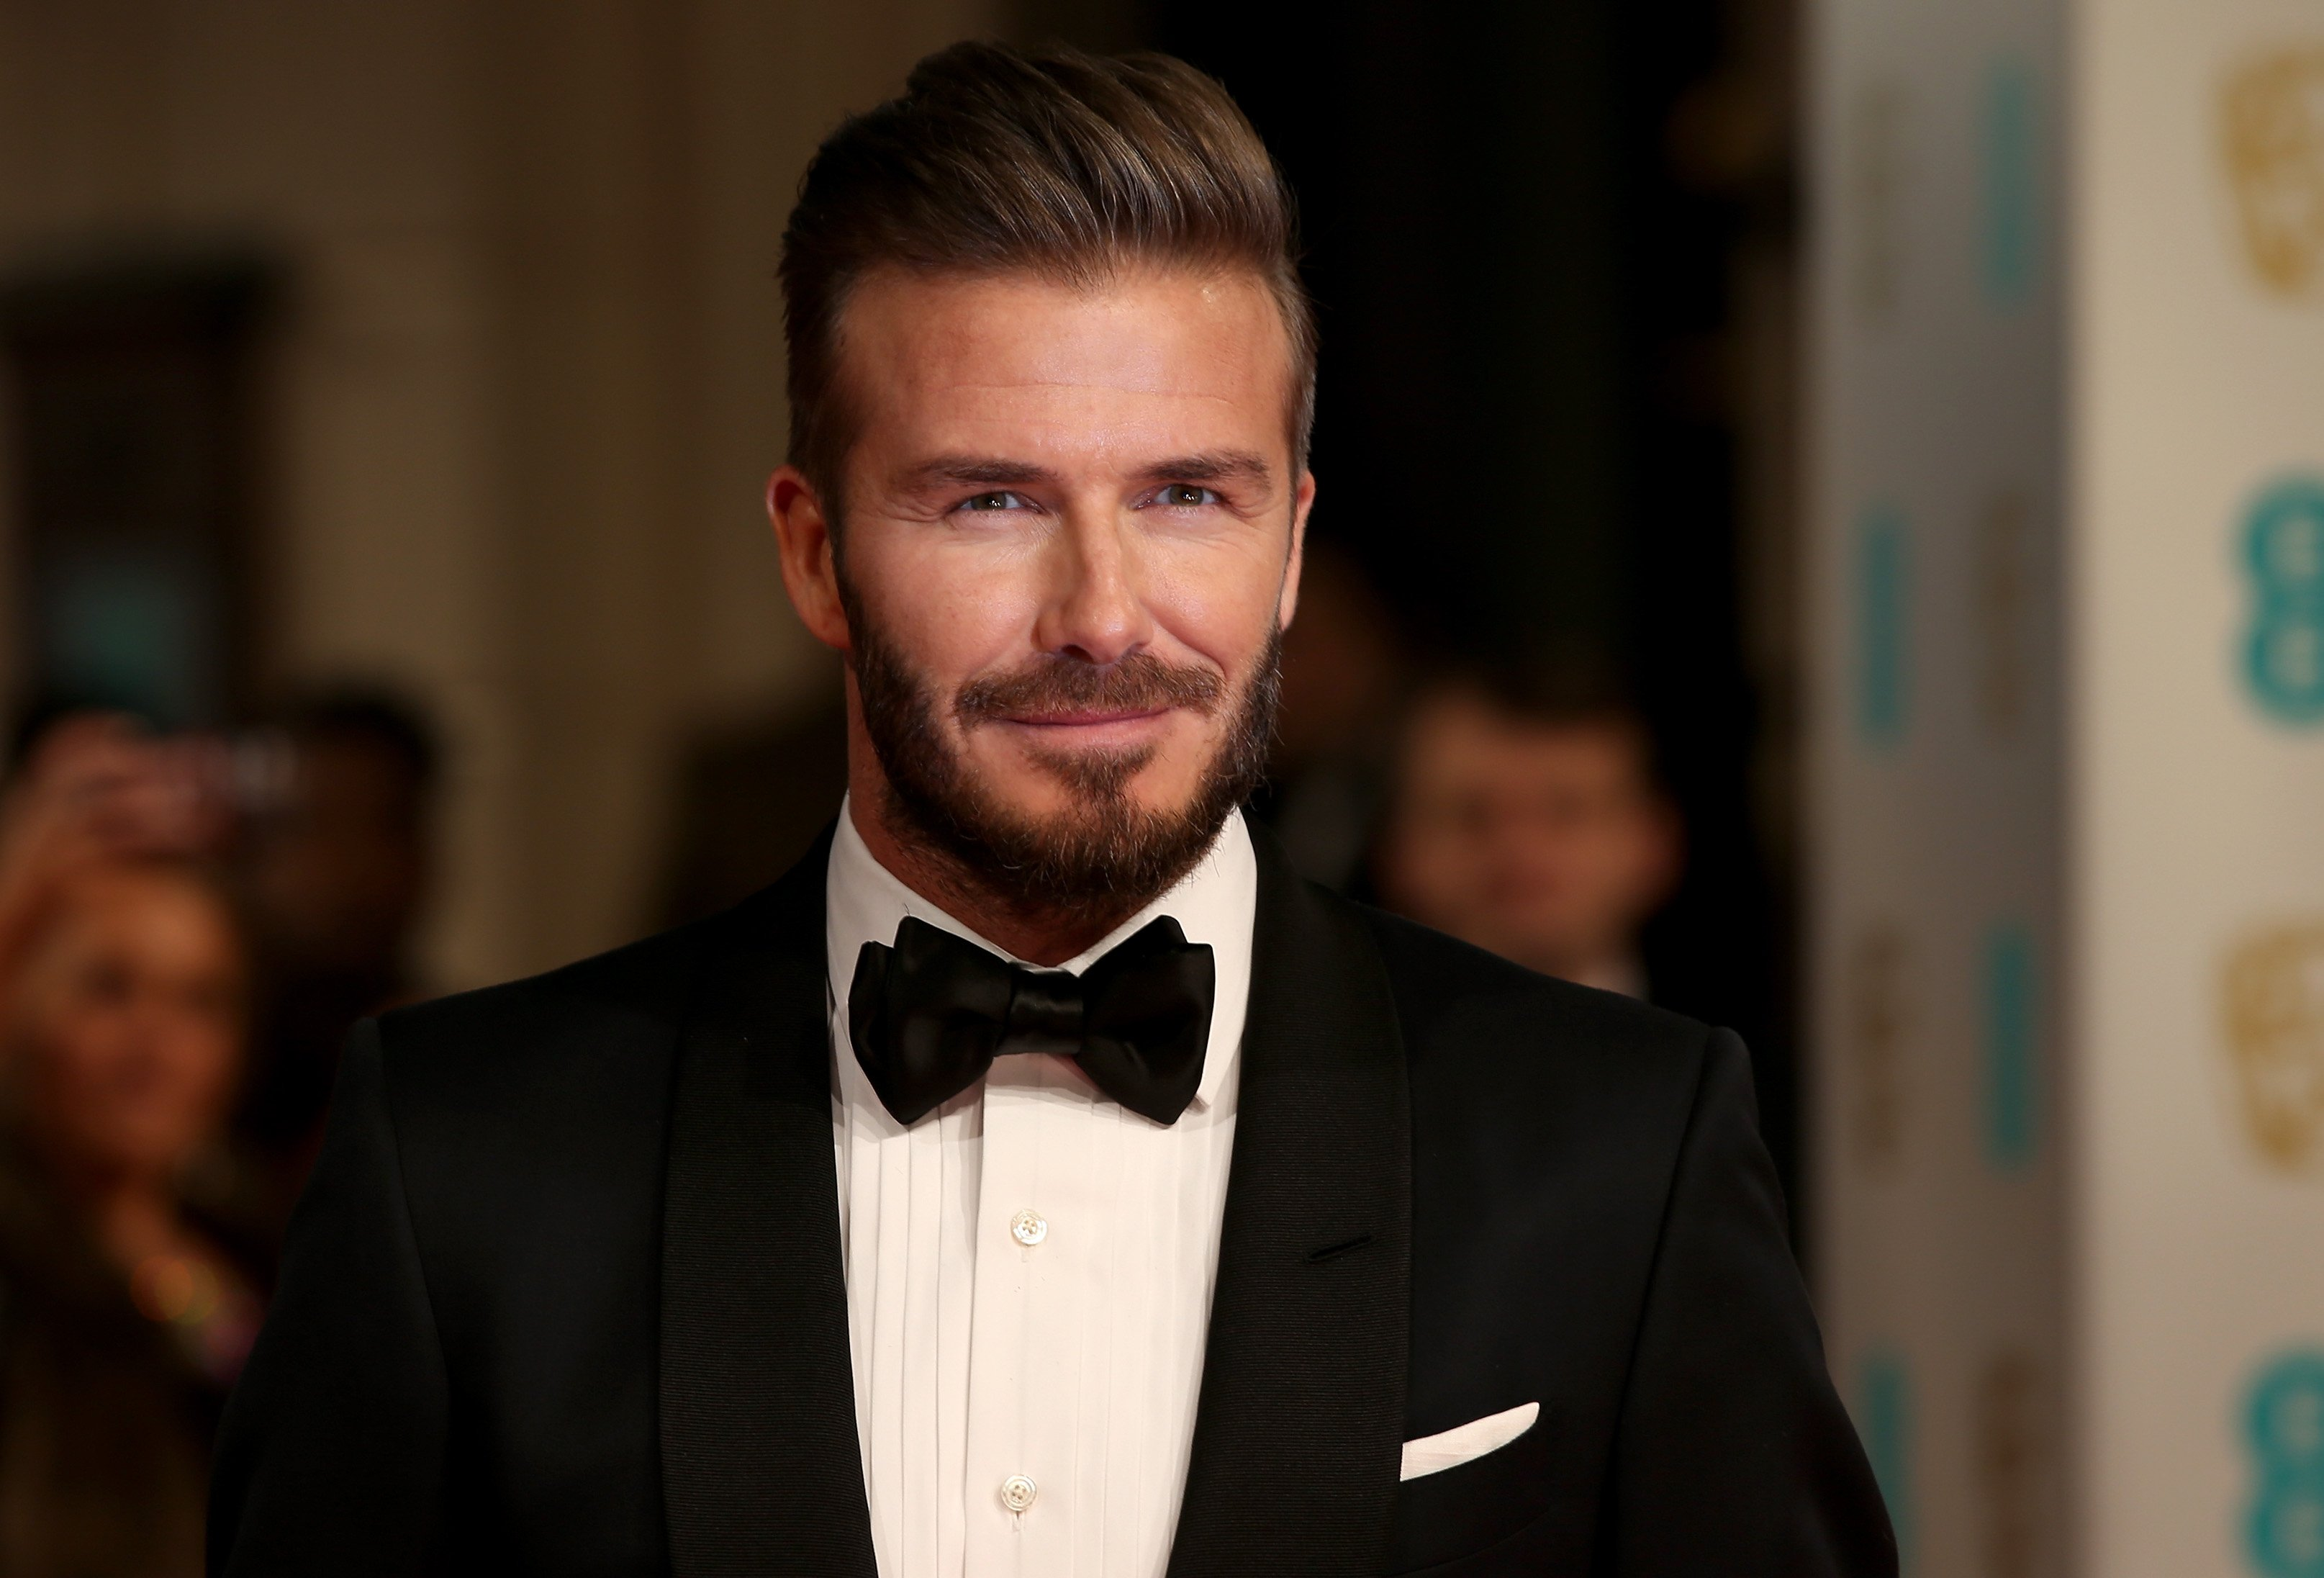 David Beckham attends the EE British Academy Film Awards at The Royal Opera House on February 8, 2015 in London, England | Photo: Getty Images